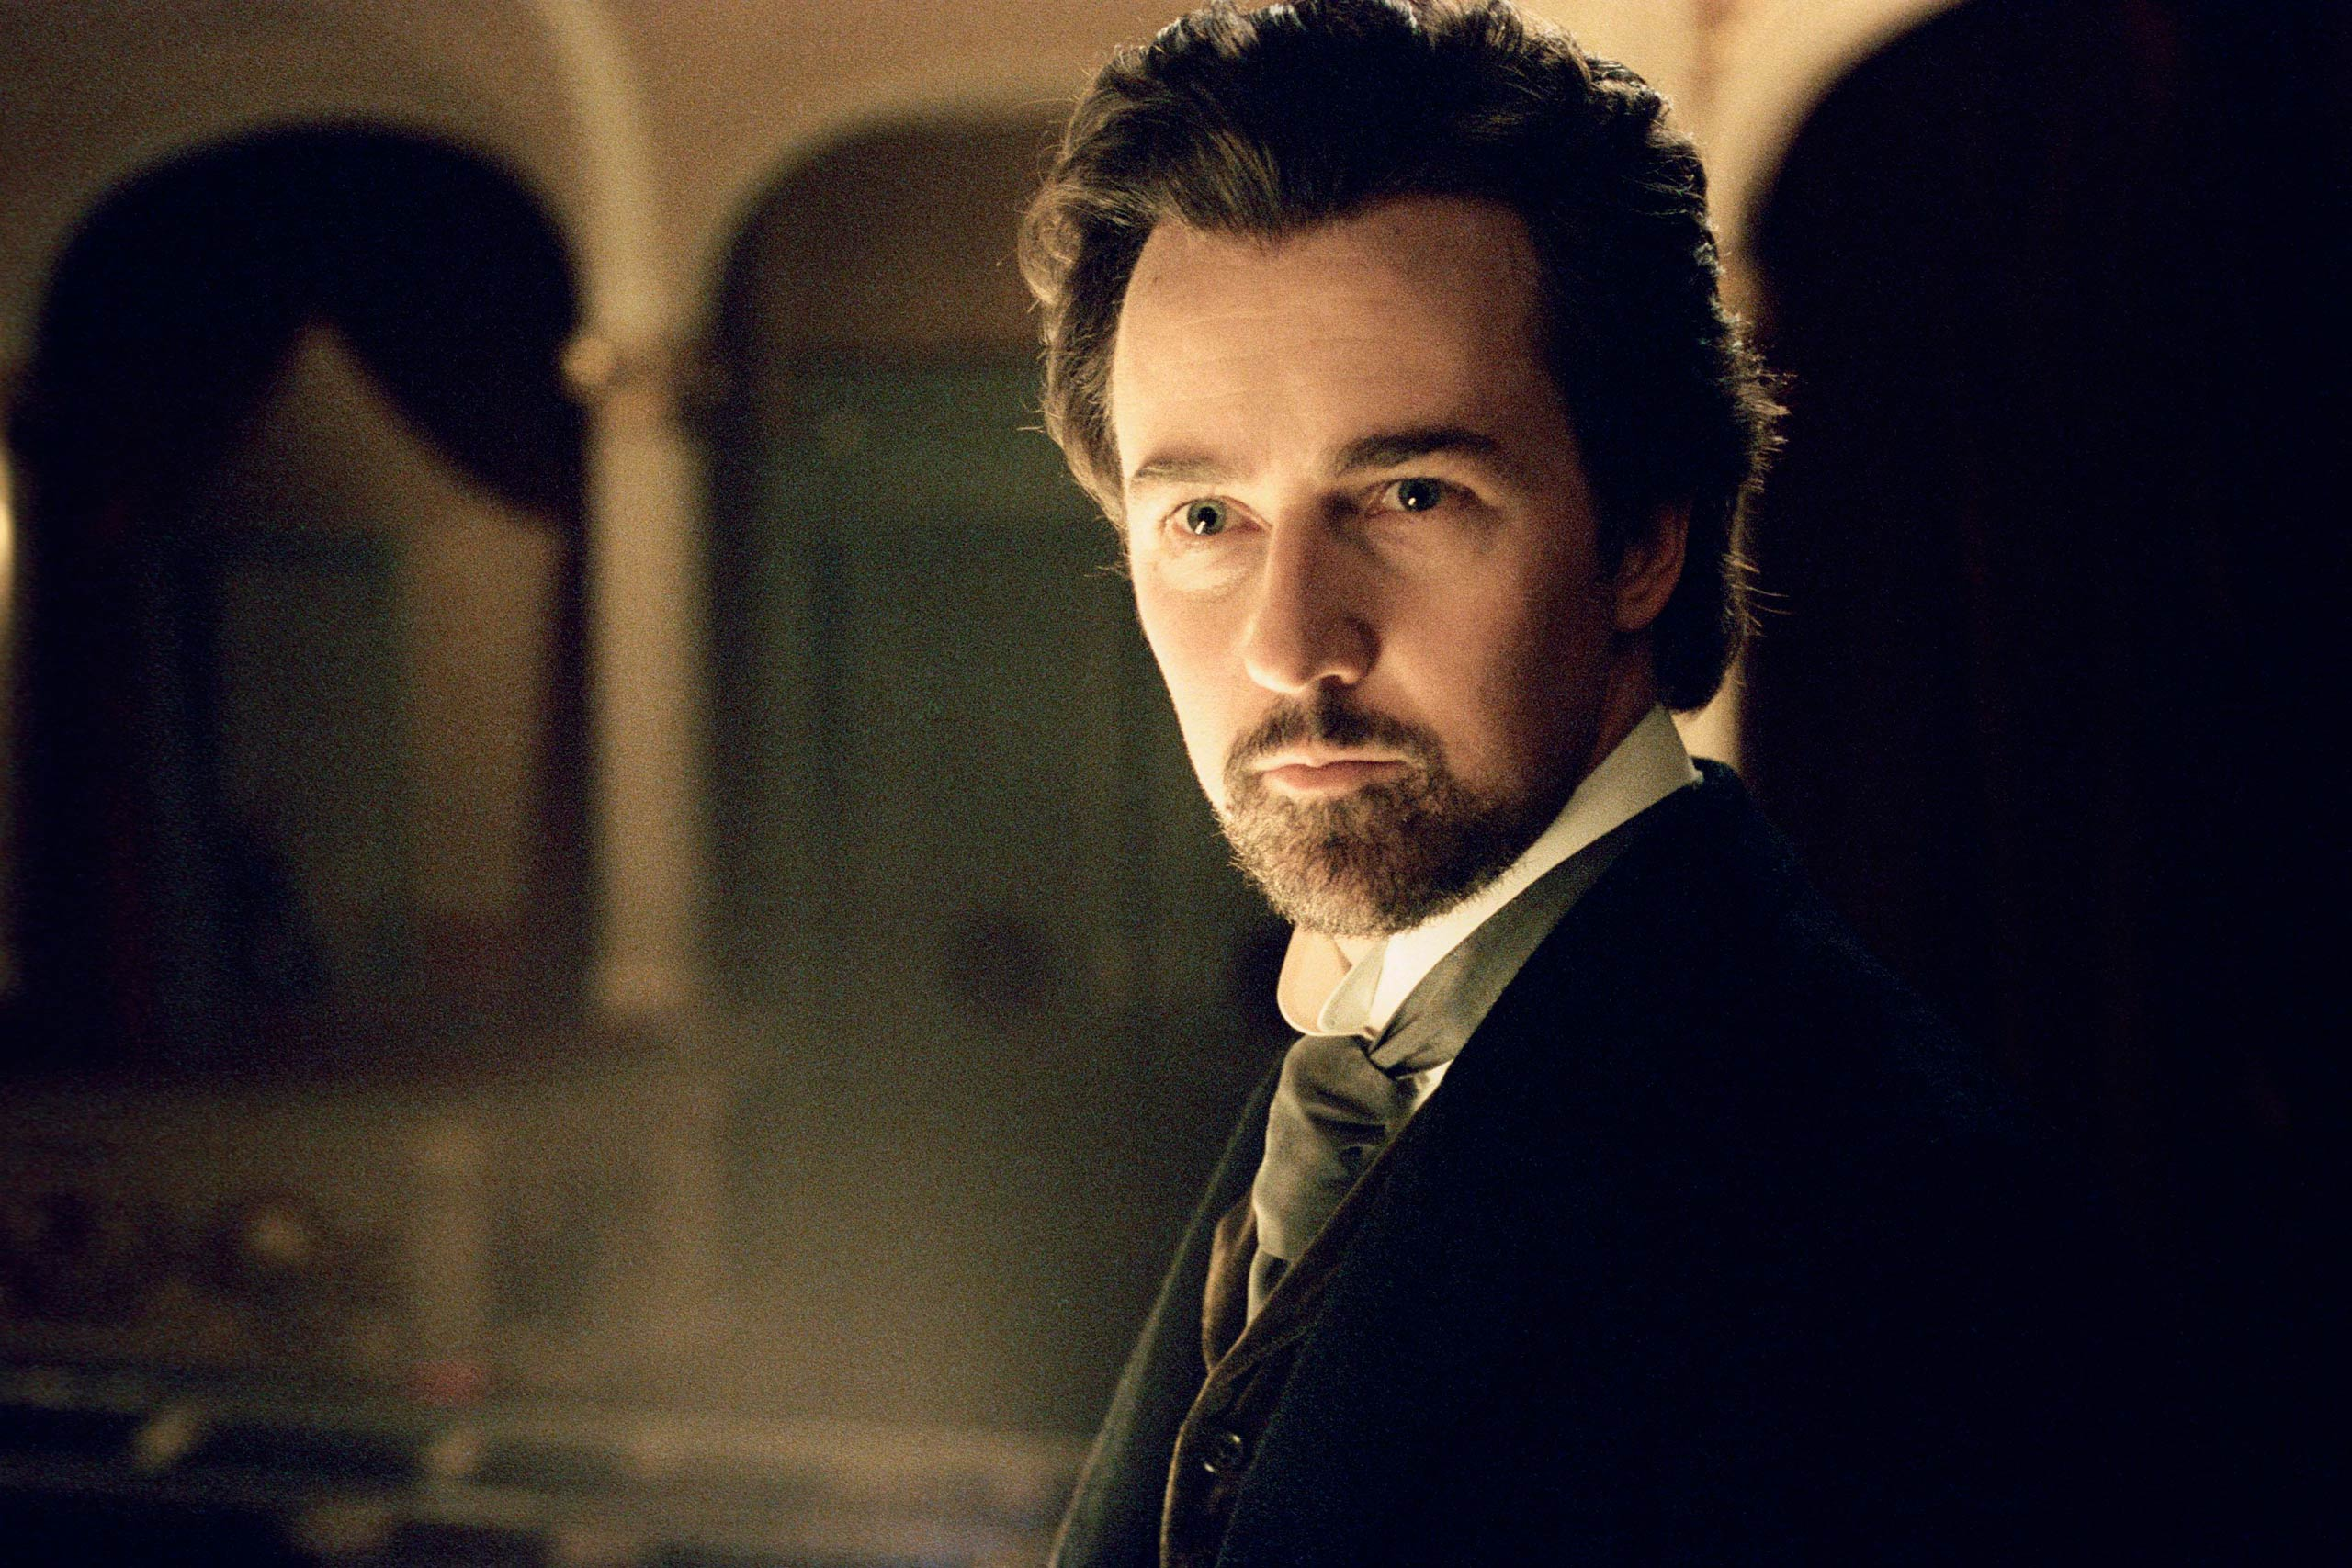 <strong><i>The Illusionist</i> (CW)</strong>                                                                      The Edward Norton film may have been set in 1889 Vienna, but the TV adaptation will take place in turn-of-the-century New York. It will follow a famous illusionist who returns home from prison to find his wife married to the mob boss who framed him for a crime.